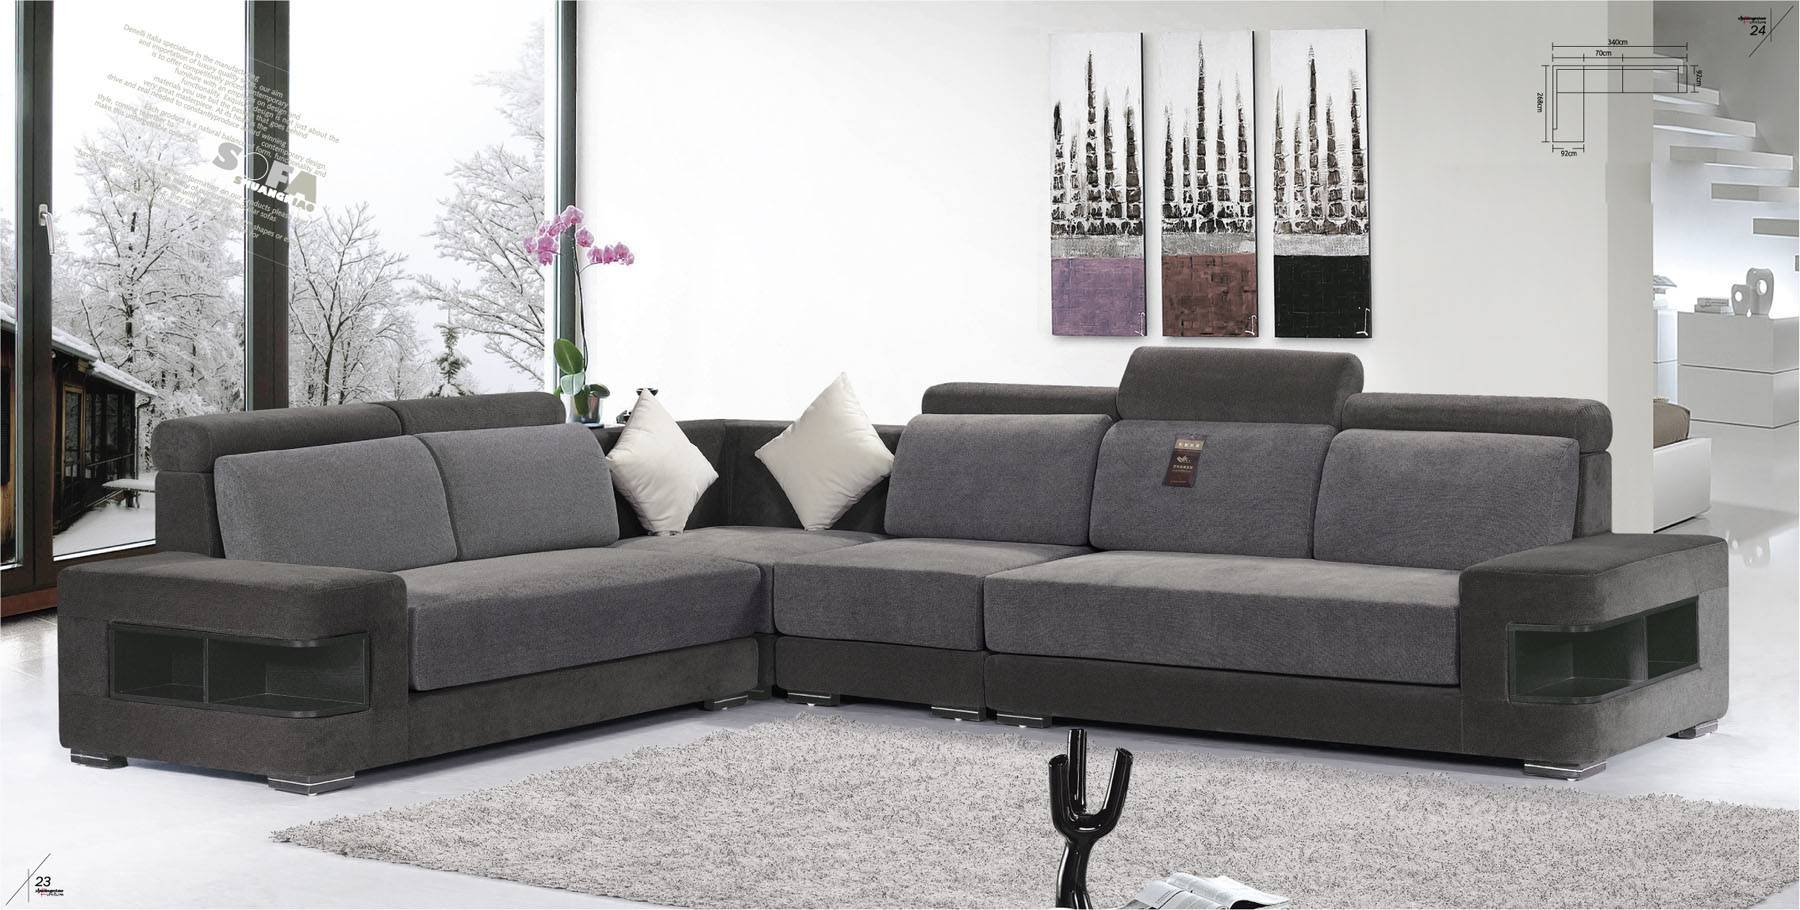 Furniture: L Shaped Sofa | Sectional Pit Sofa | Comfy Couches with regard to Small L-Shaped Sofas (Image 6 of 15)